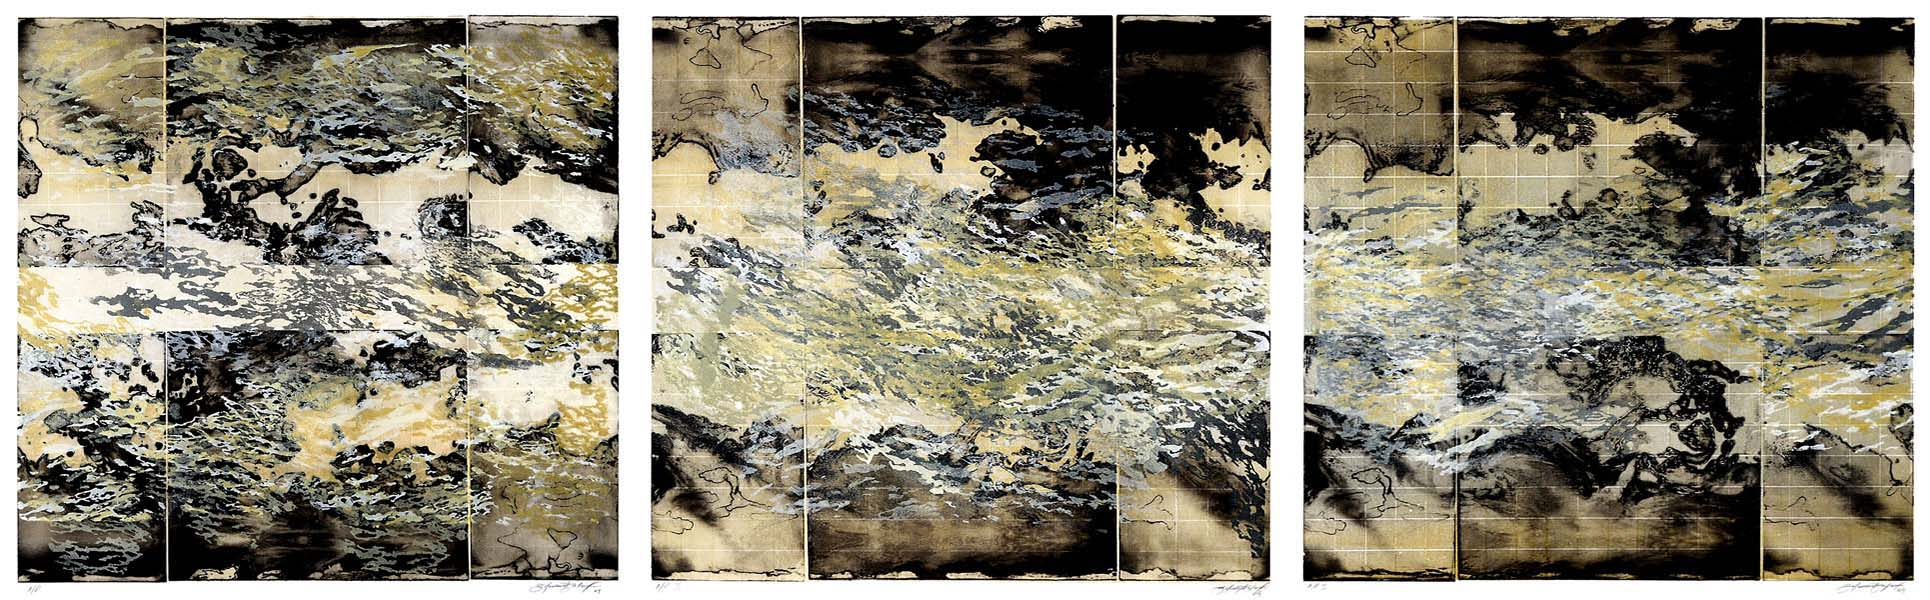 Atmosphere in Gold I,II,III, print